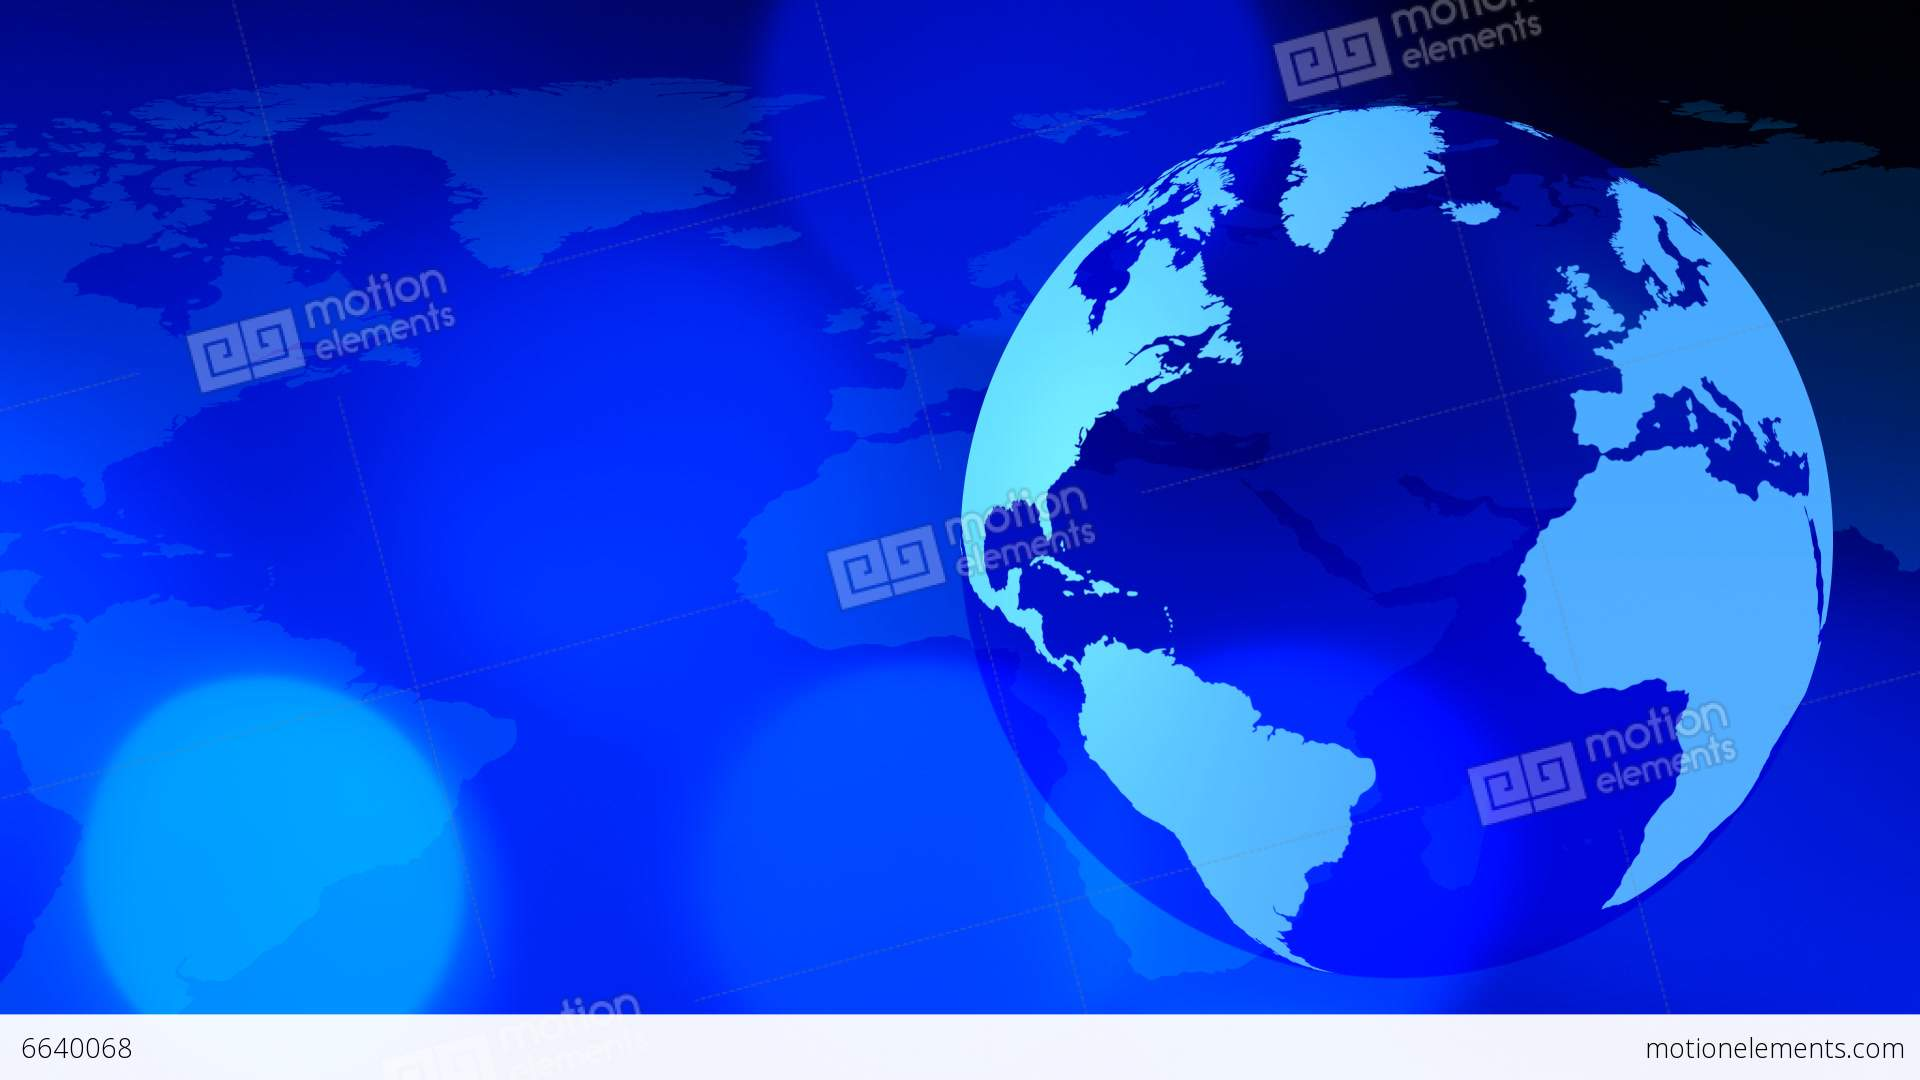 News rotating world and map backgrounds stock animation 6640068 news rotating world and map backgrounds stock video footage gumiabroncs Image collections